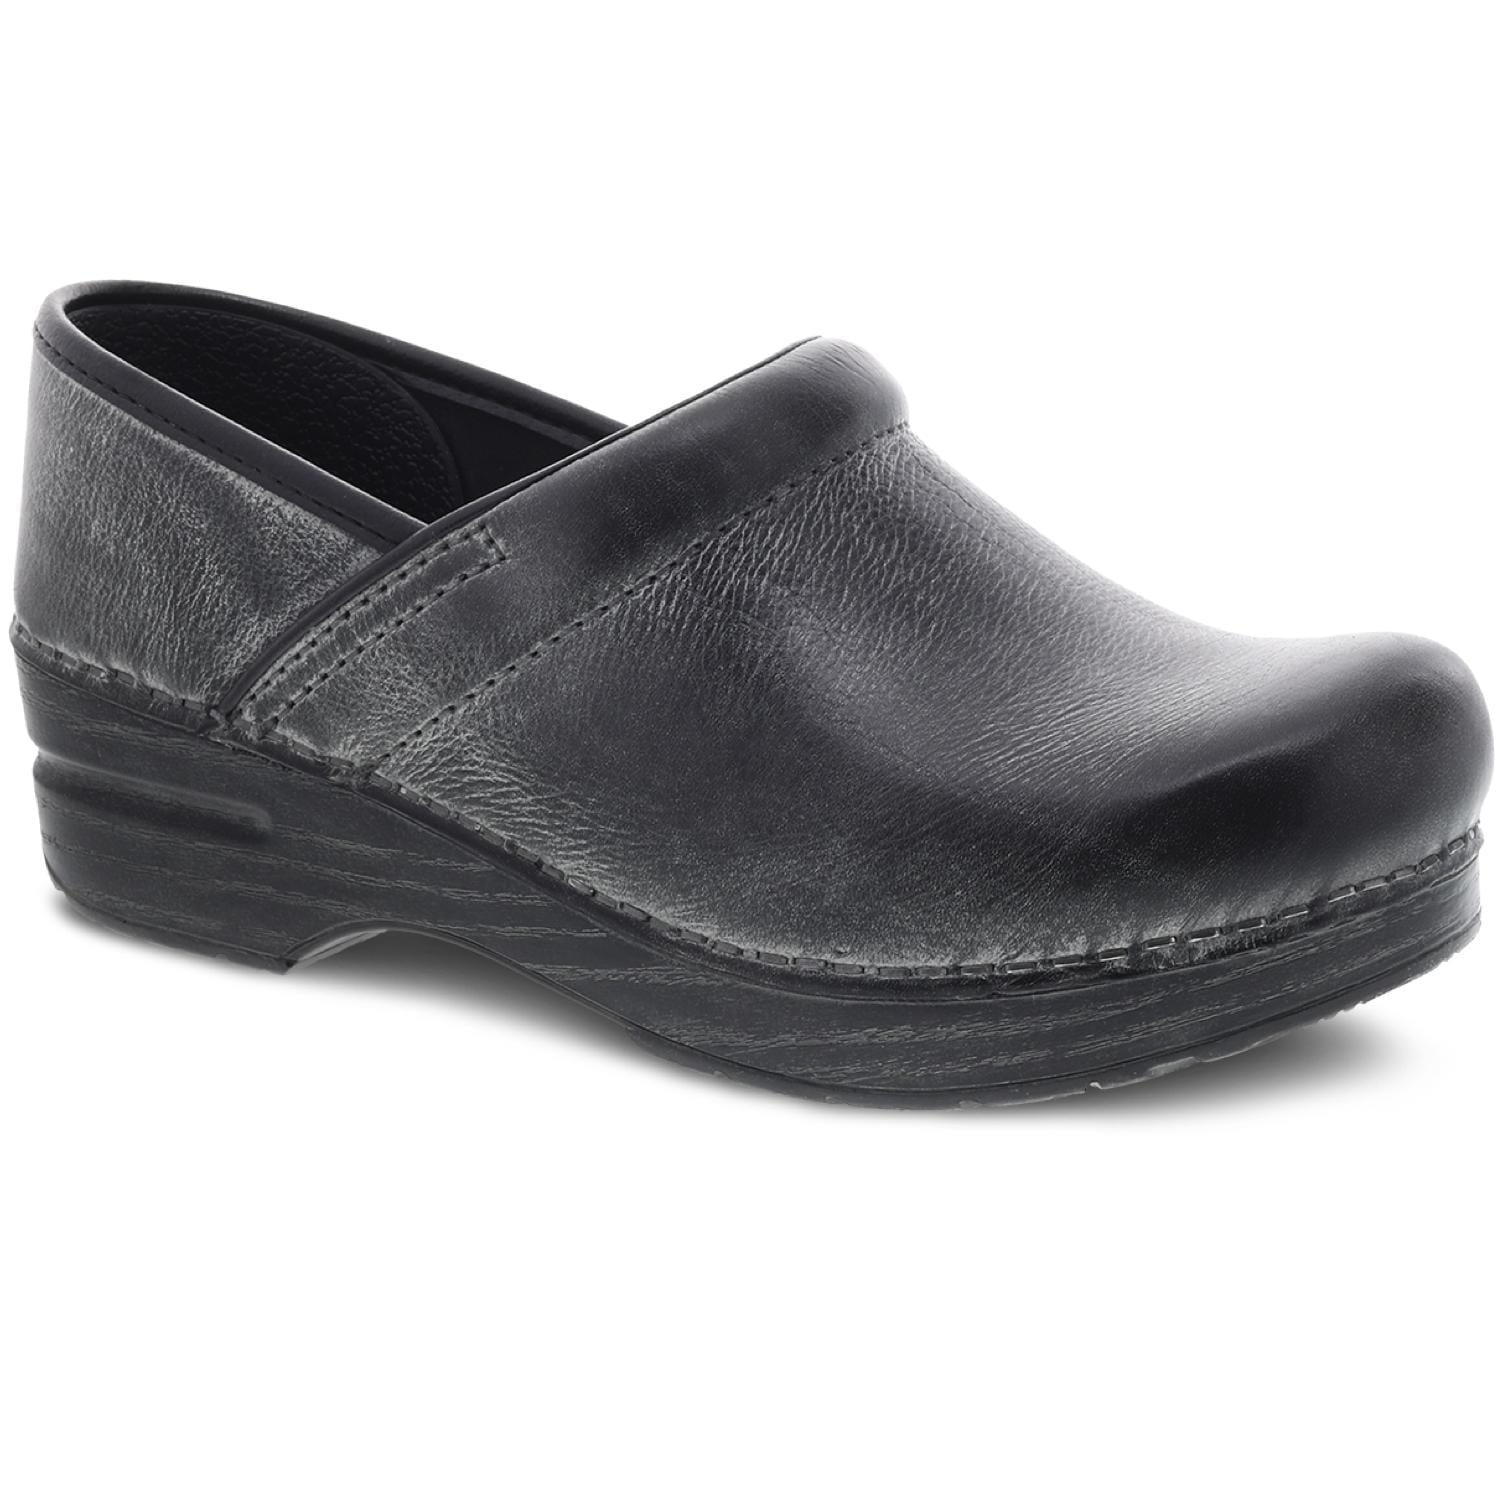 Dansko Professional Women's Anti Fatigue Clog - Women's Work Shoe